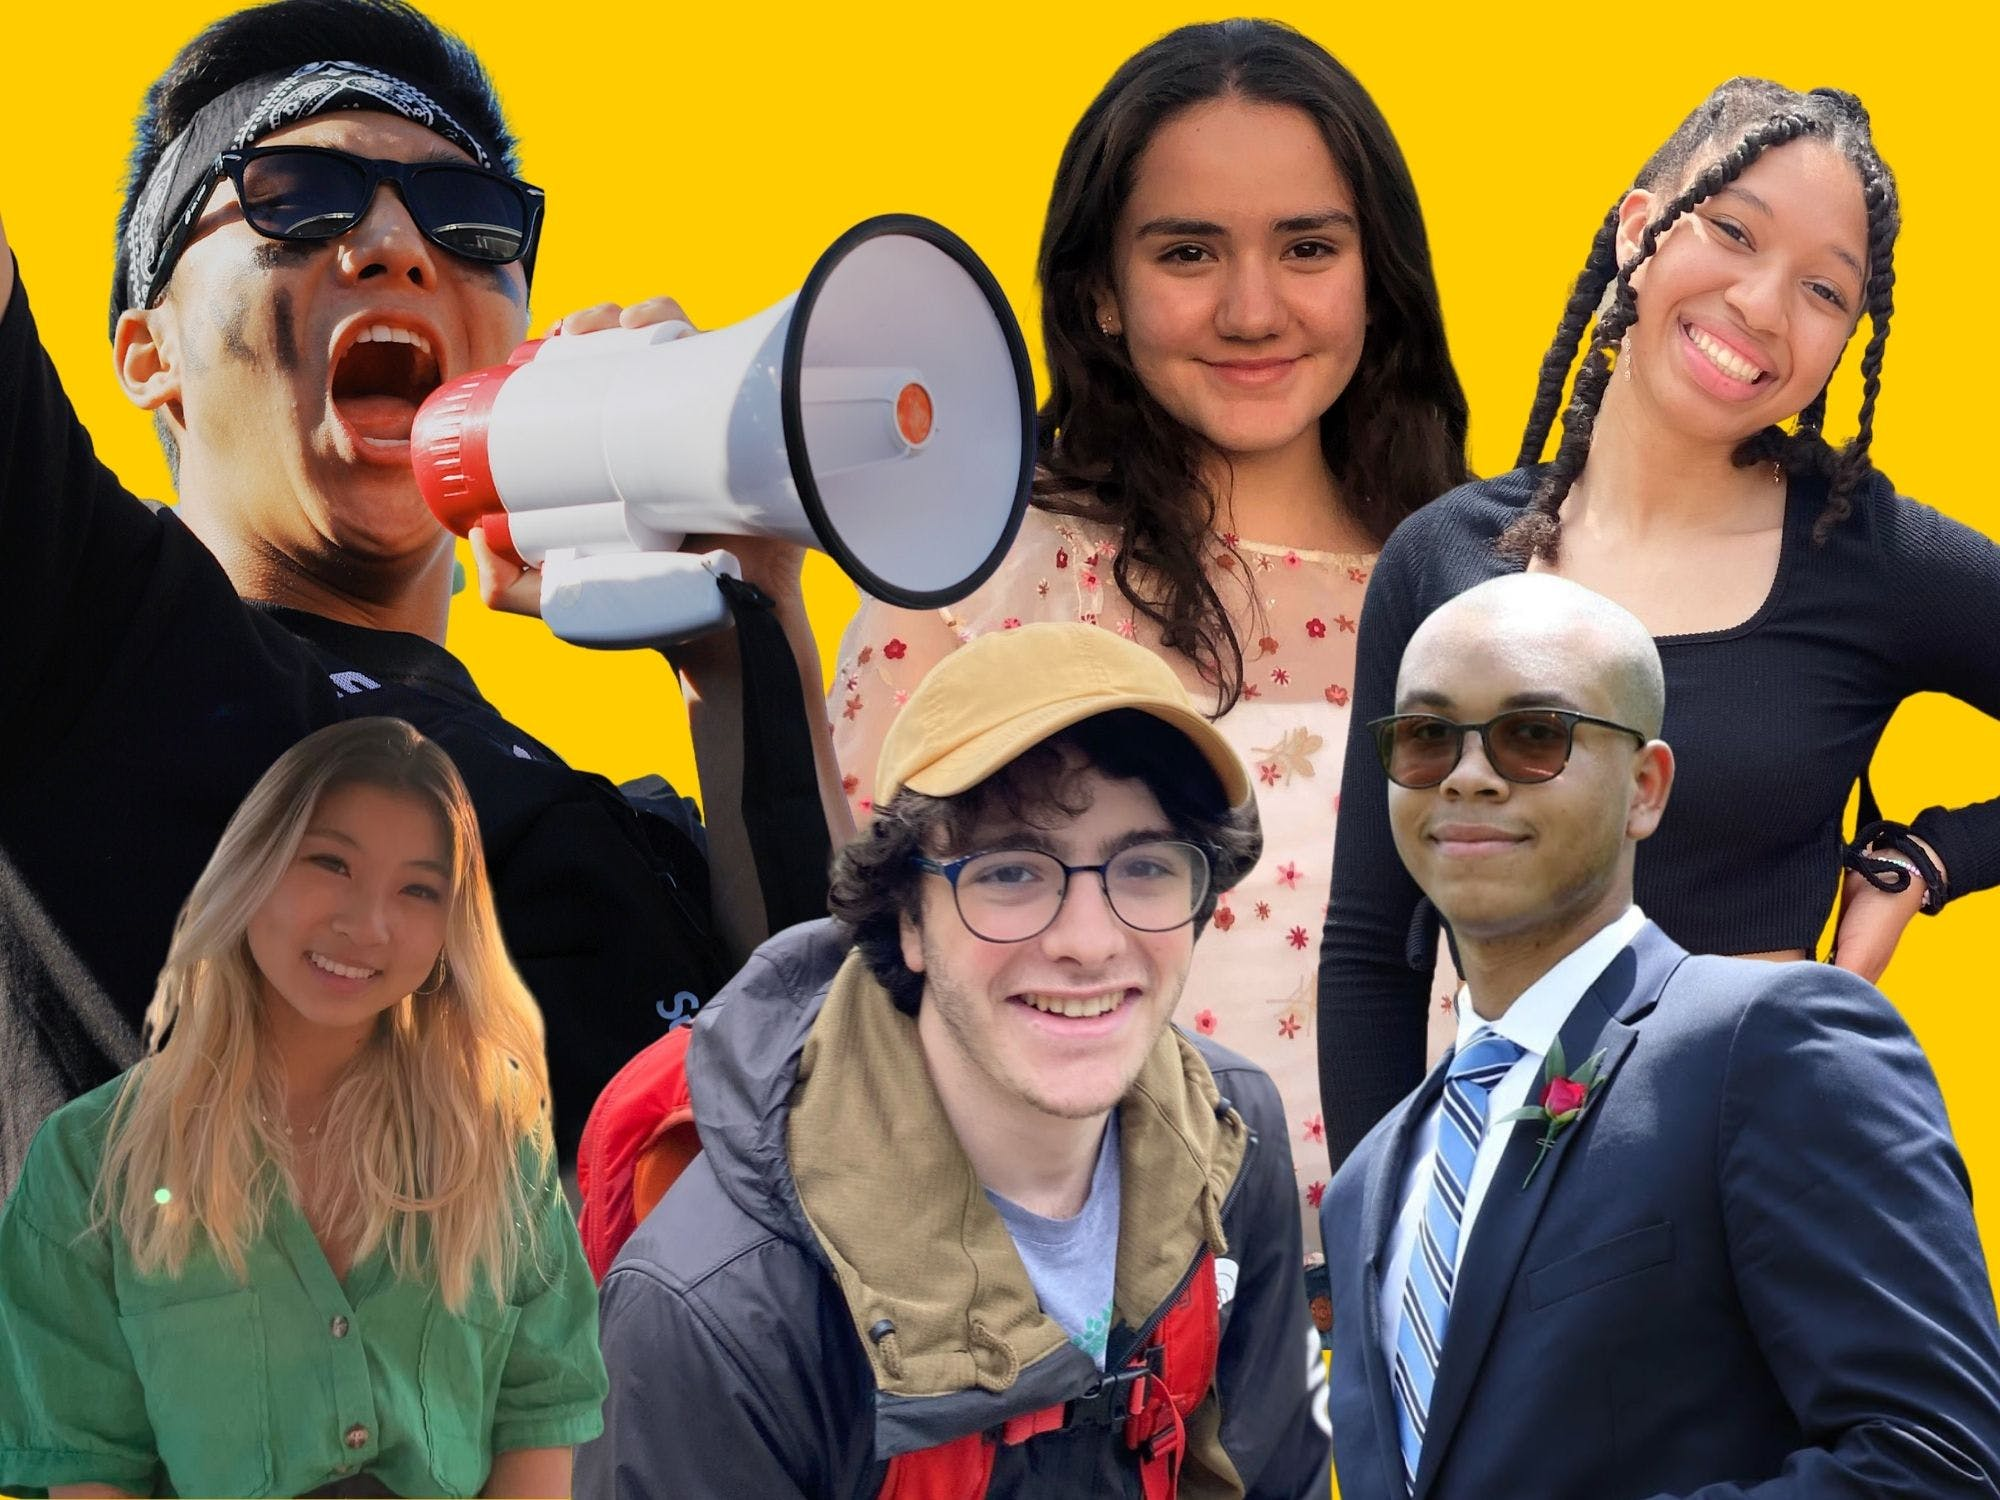 Six young people on a yellow background. From left to right: a man in sunglasses yelling into a megaphone; a woman smiling wearing floral blouse; woman with long braids, tilted head smiling wide; woman with blonde hair and green top; male with glasses, beige cap, and rain jacket; bald male with sunglasses, blue suit and striped tie